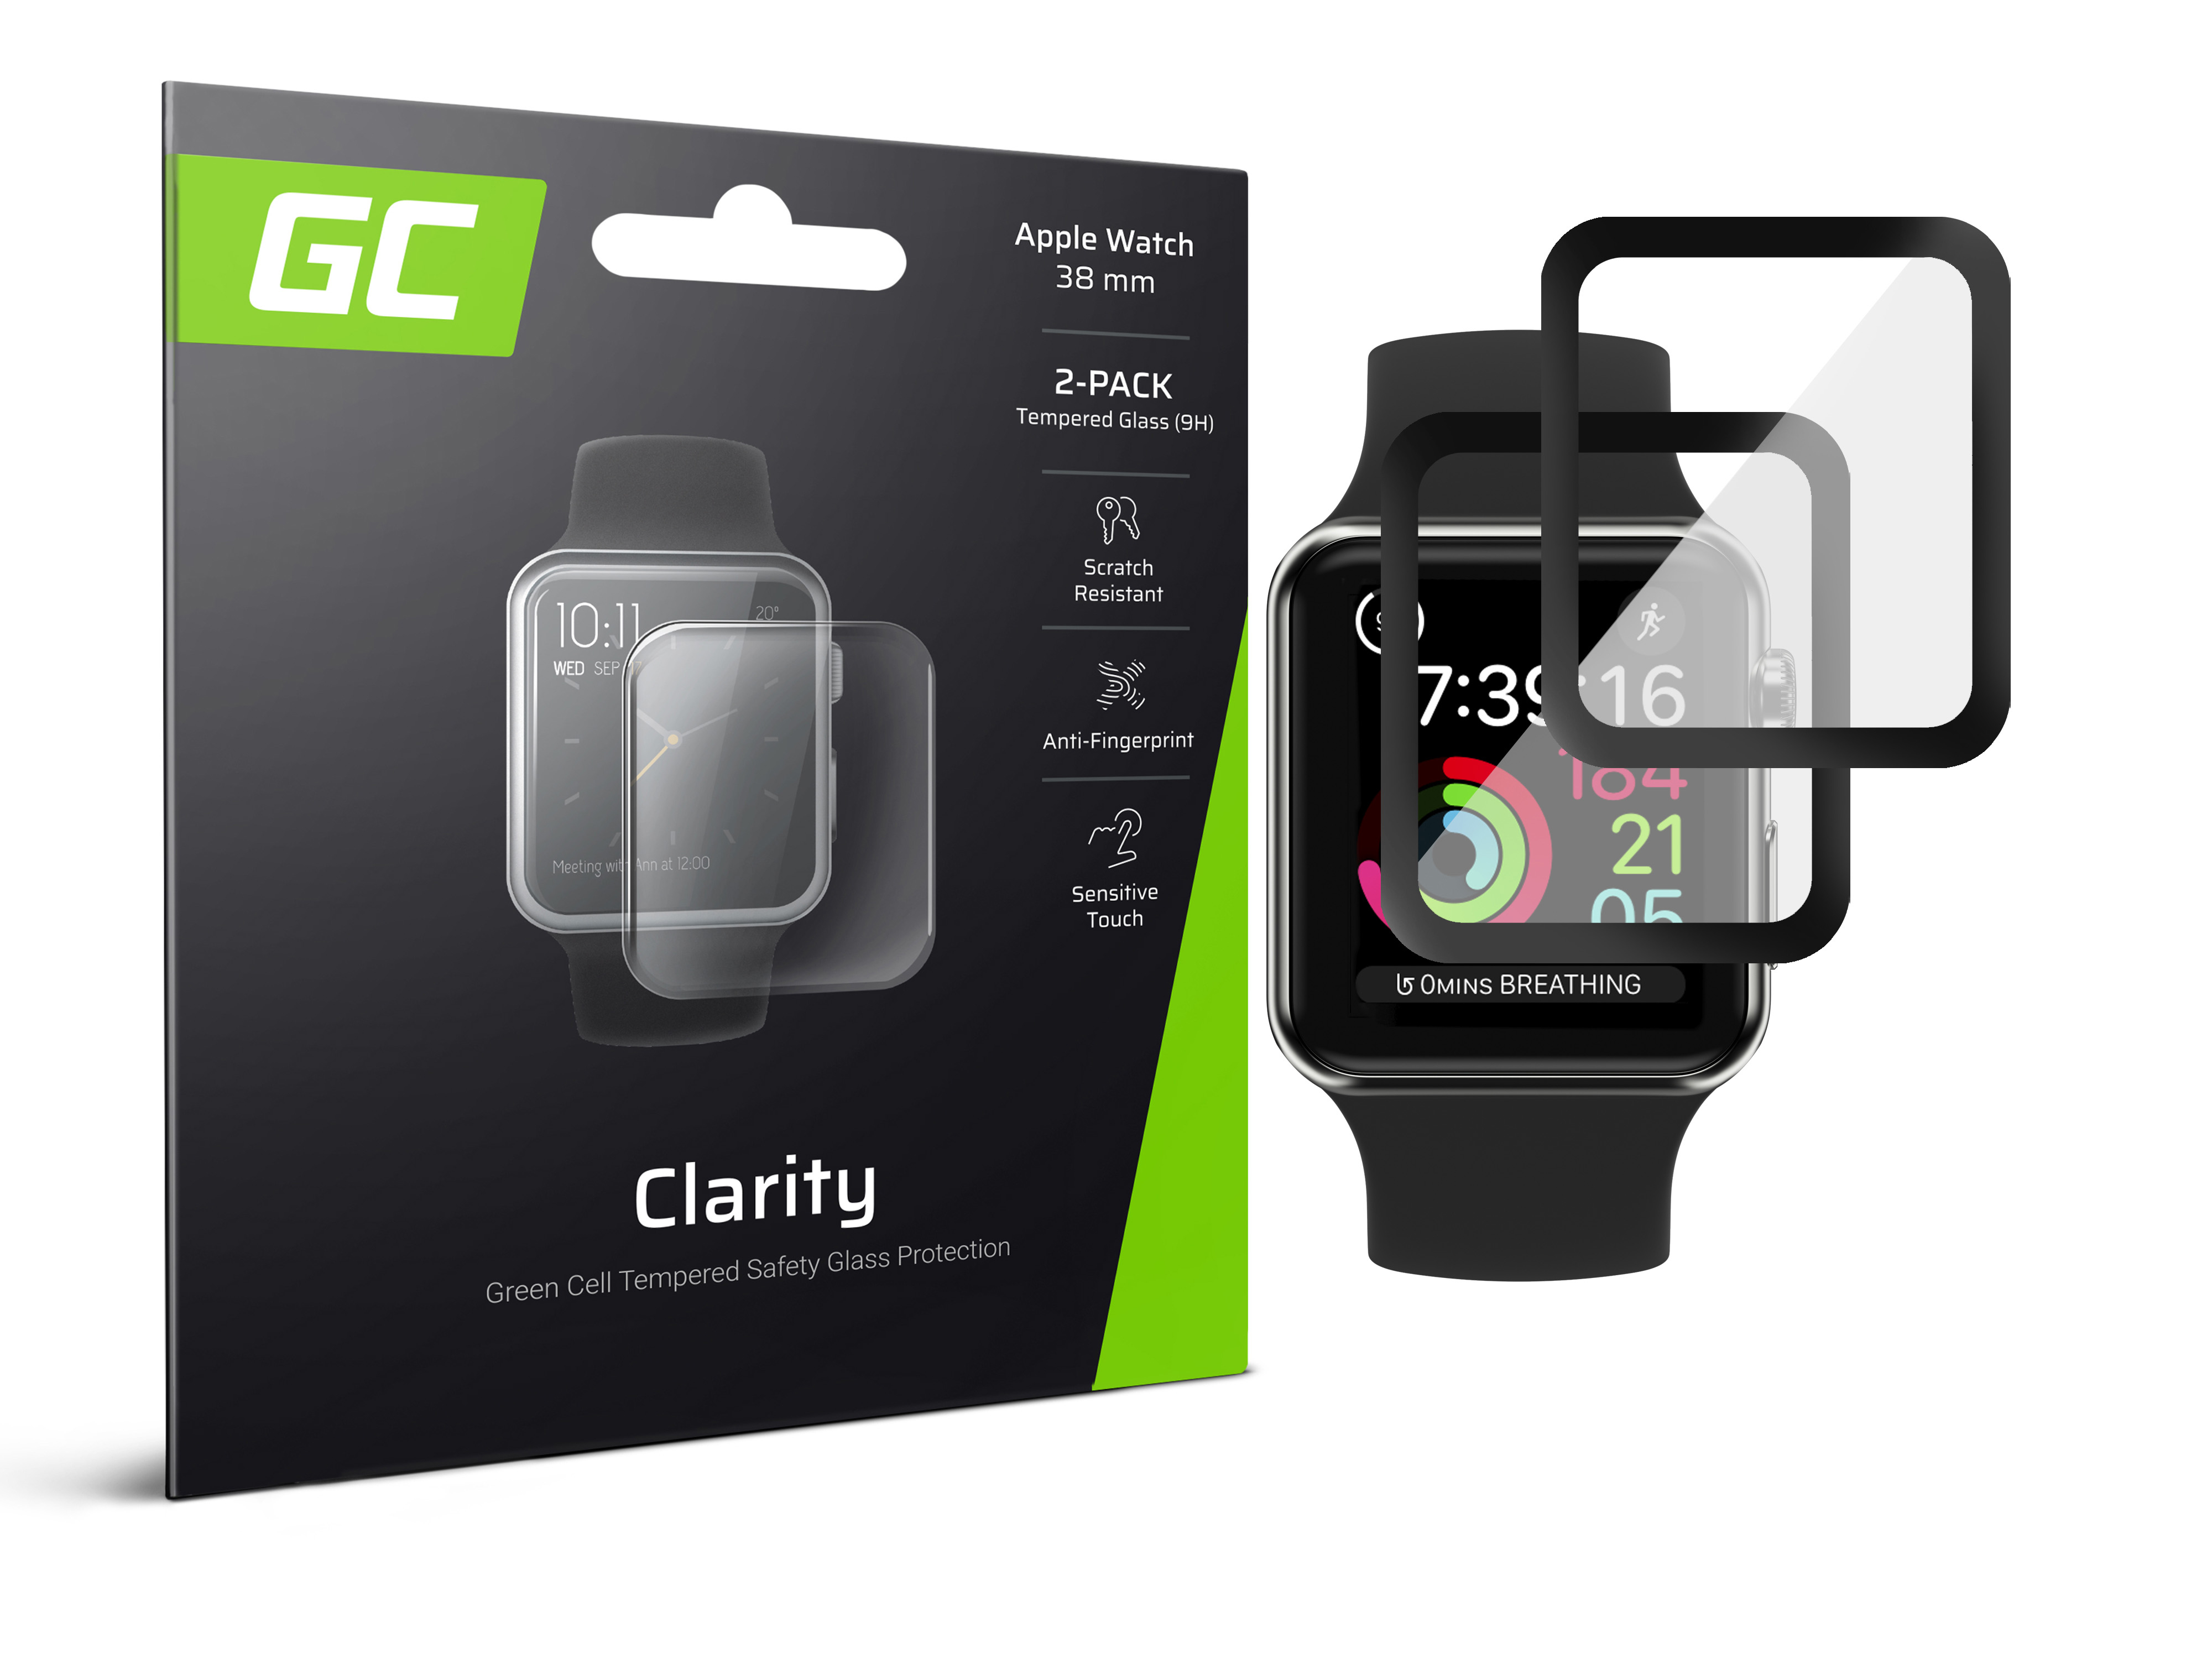 2x GC Clarity Screen Protector for Apple Watch 3 38mm